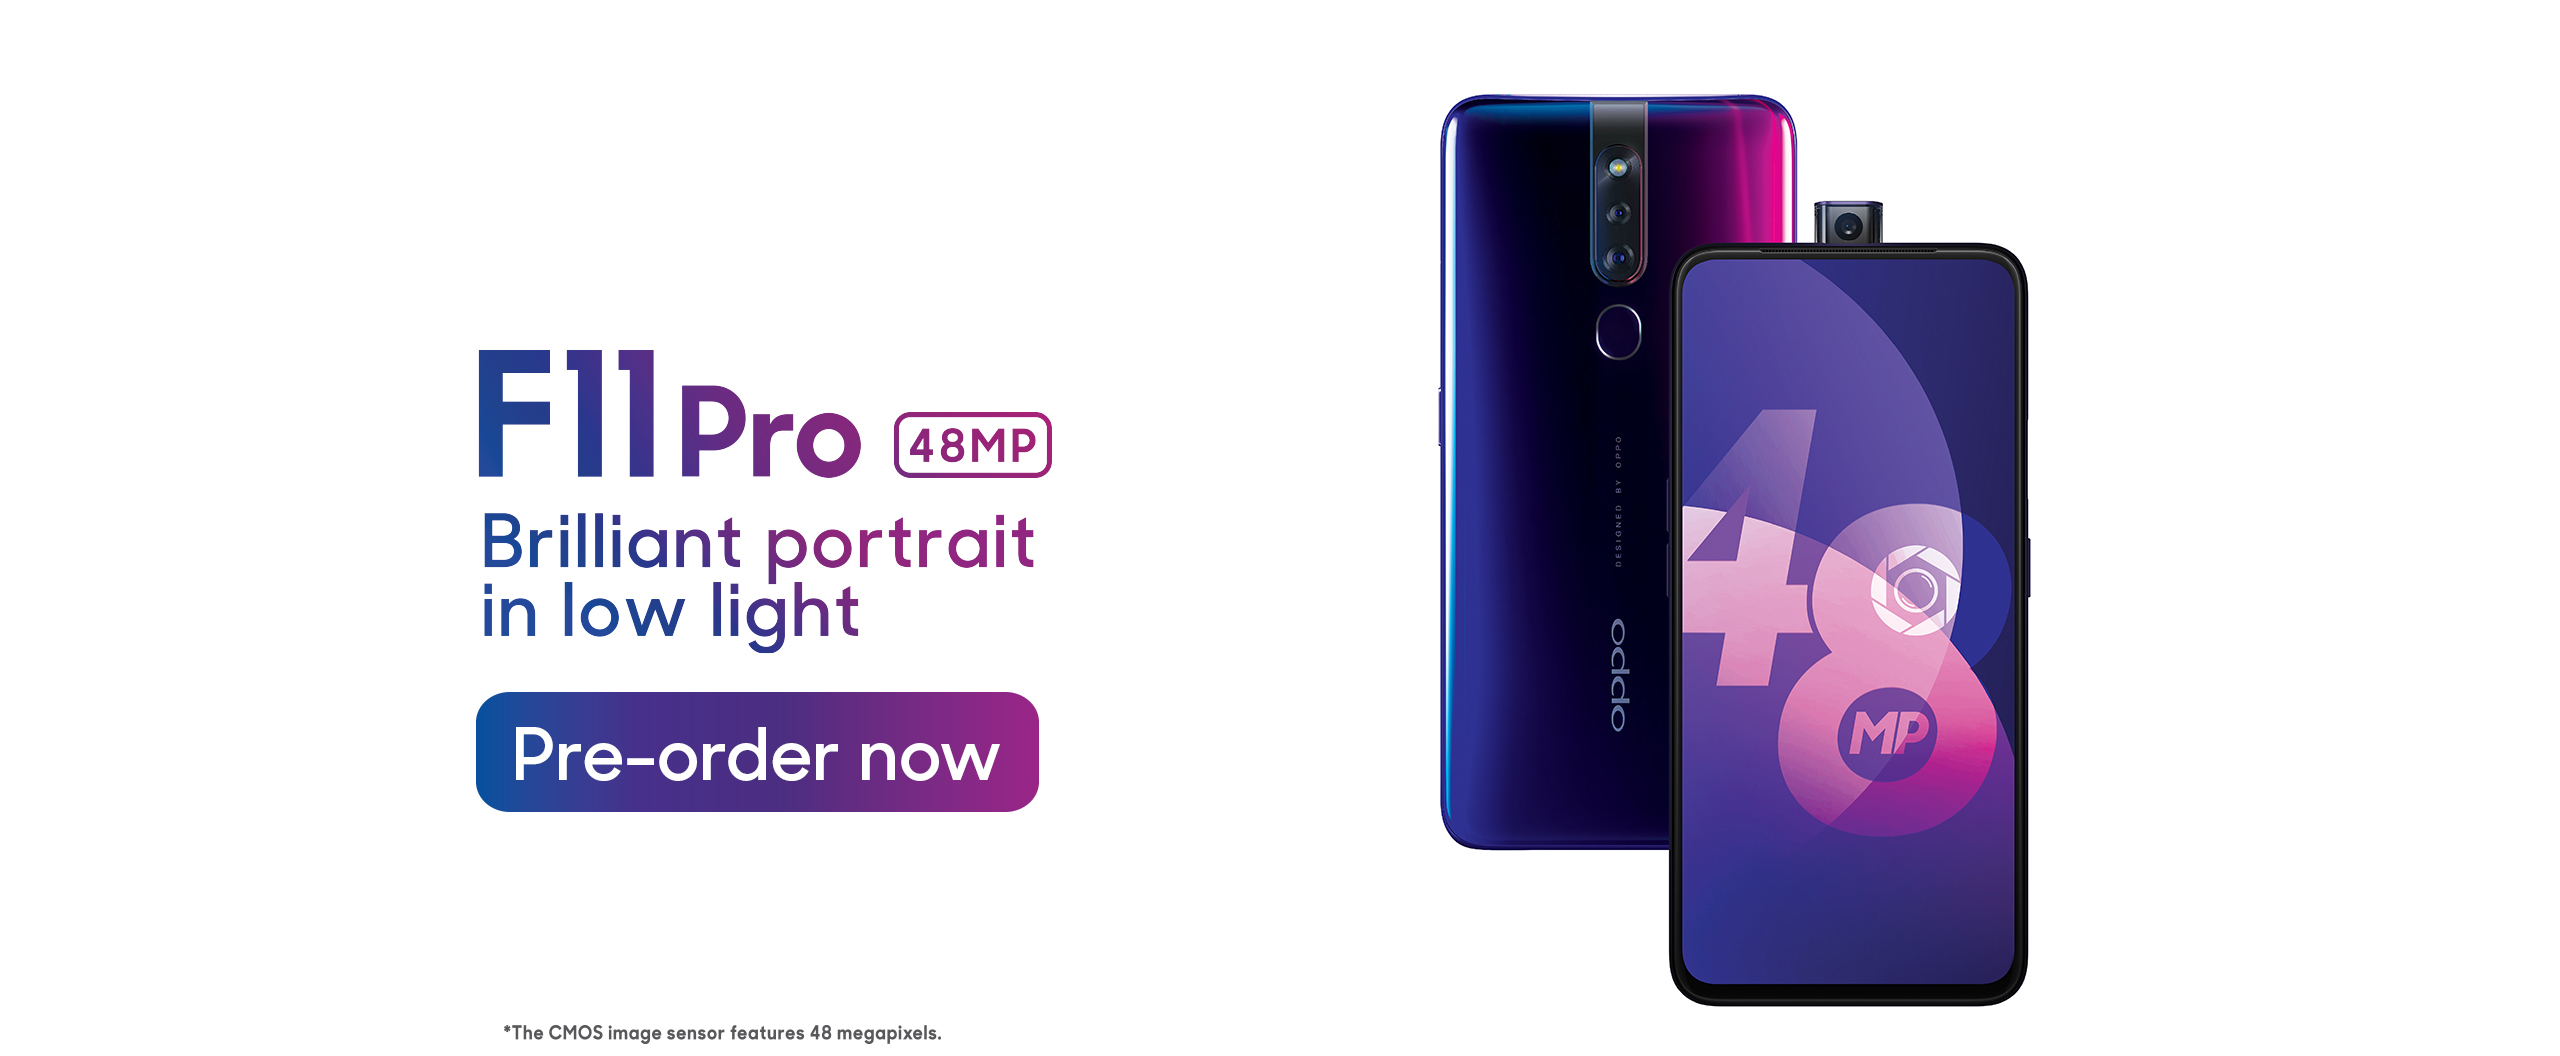 Oppo F11 Pro Wallpapers: F11 Pro Features & Specs